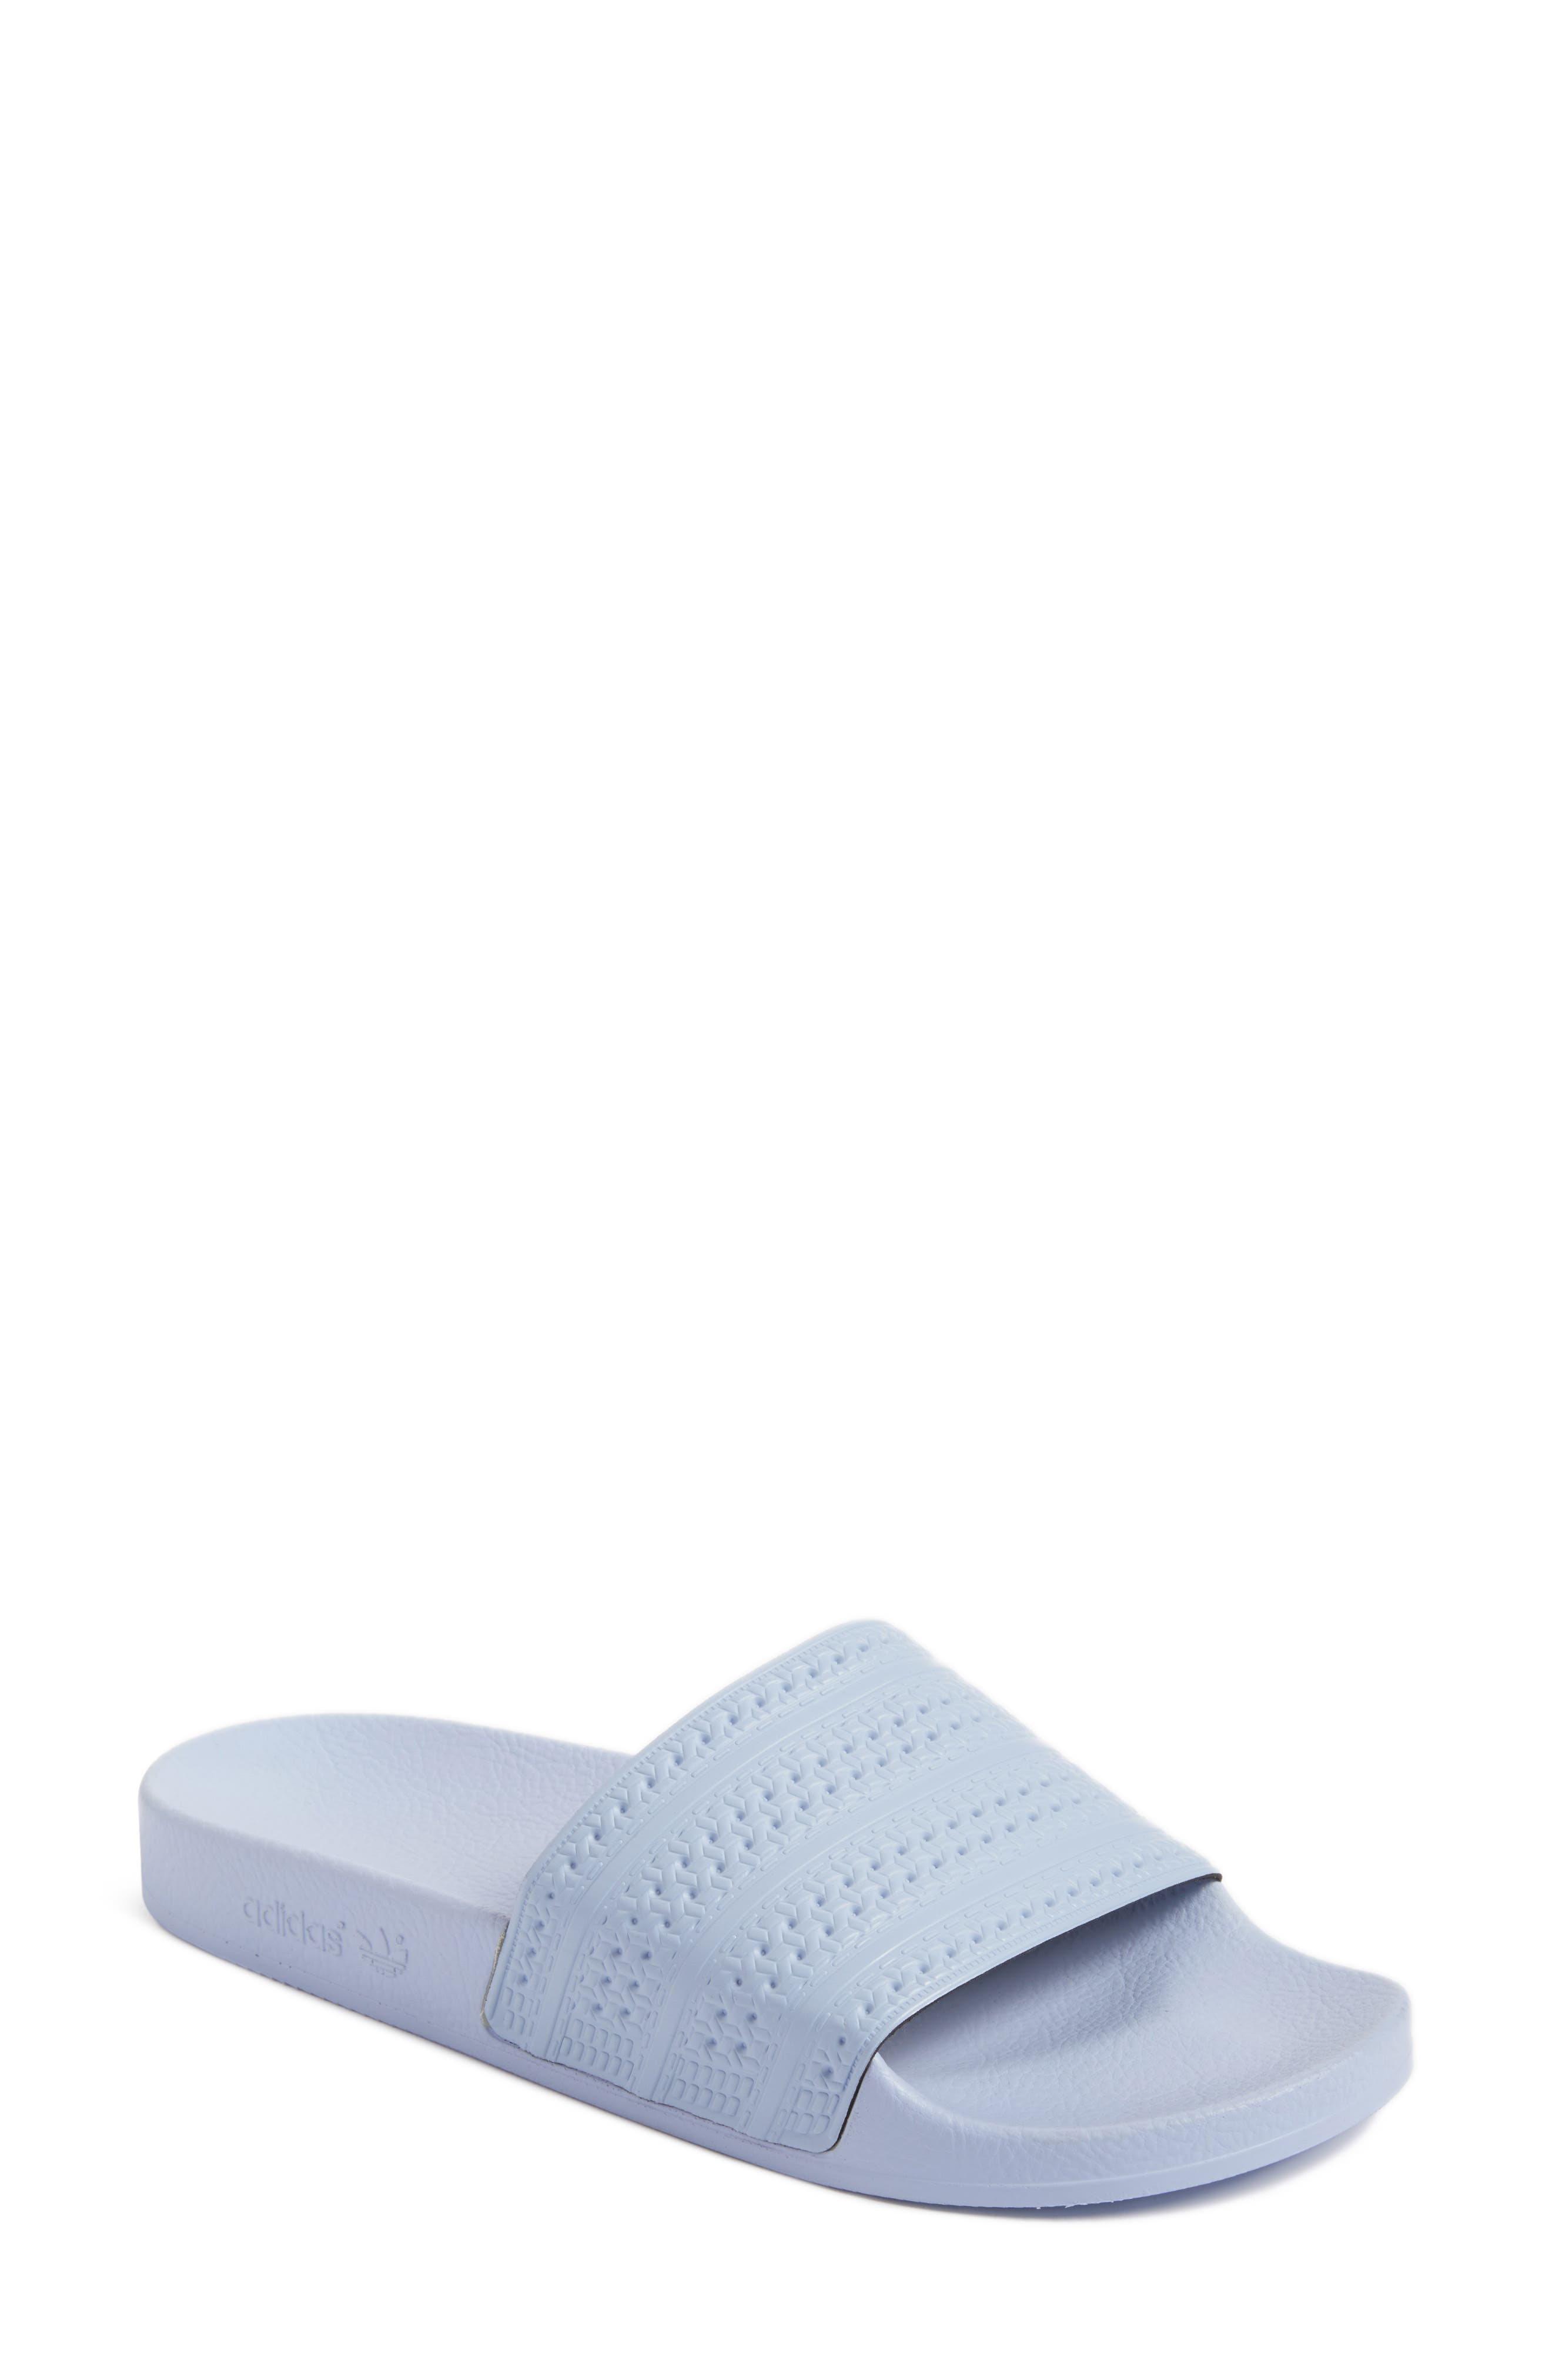 Alternate Image 1 Selected - adidas 'Adilette' Slide Sandal (Women)